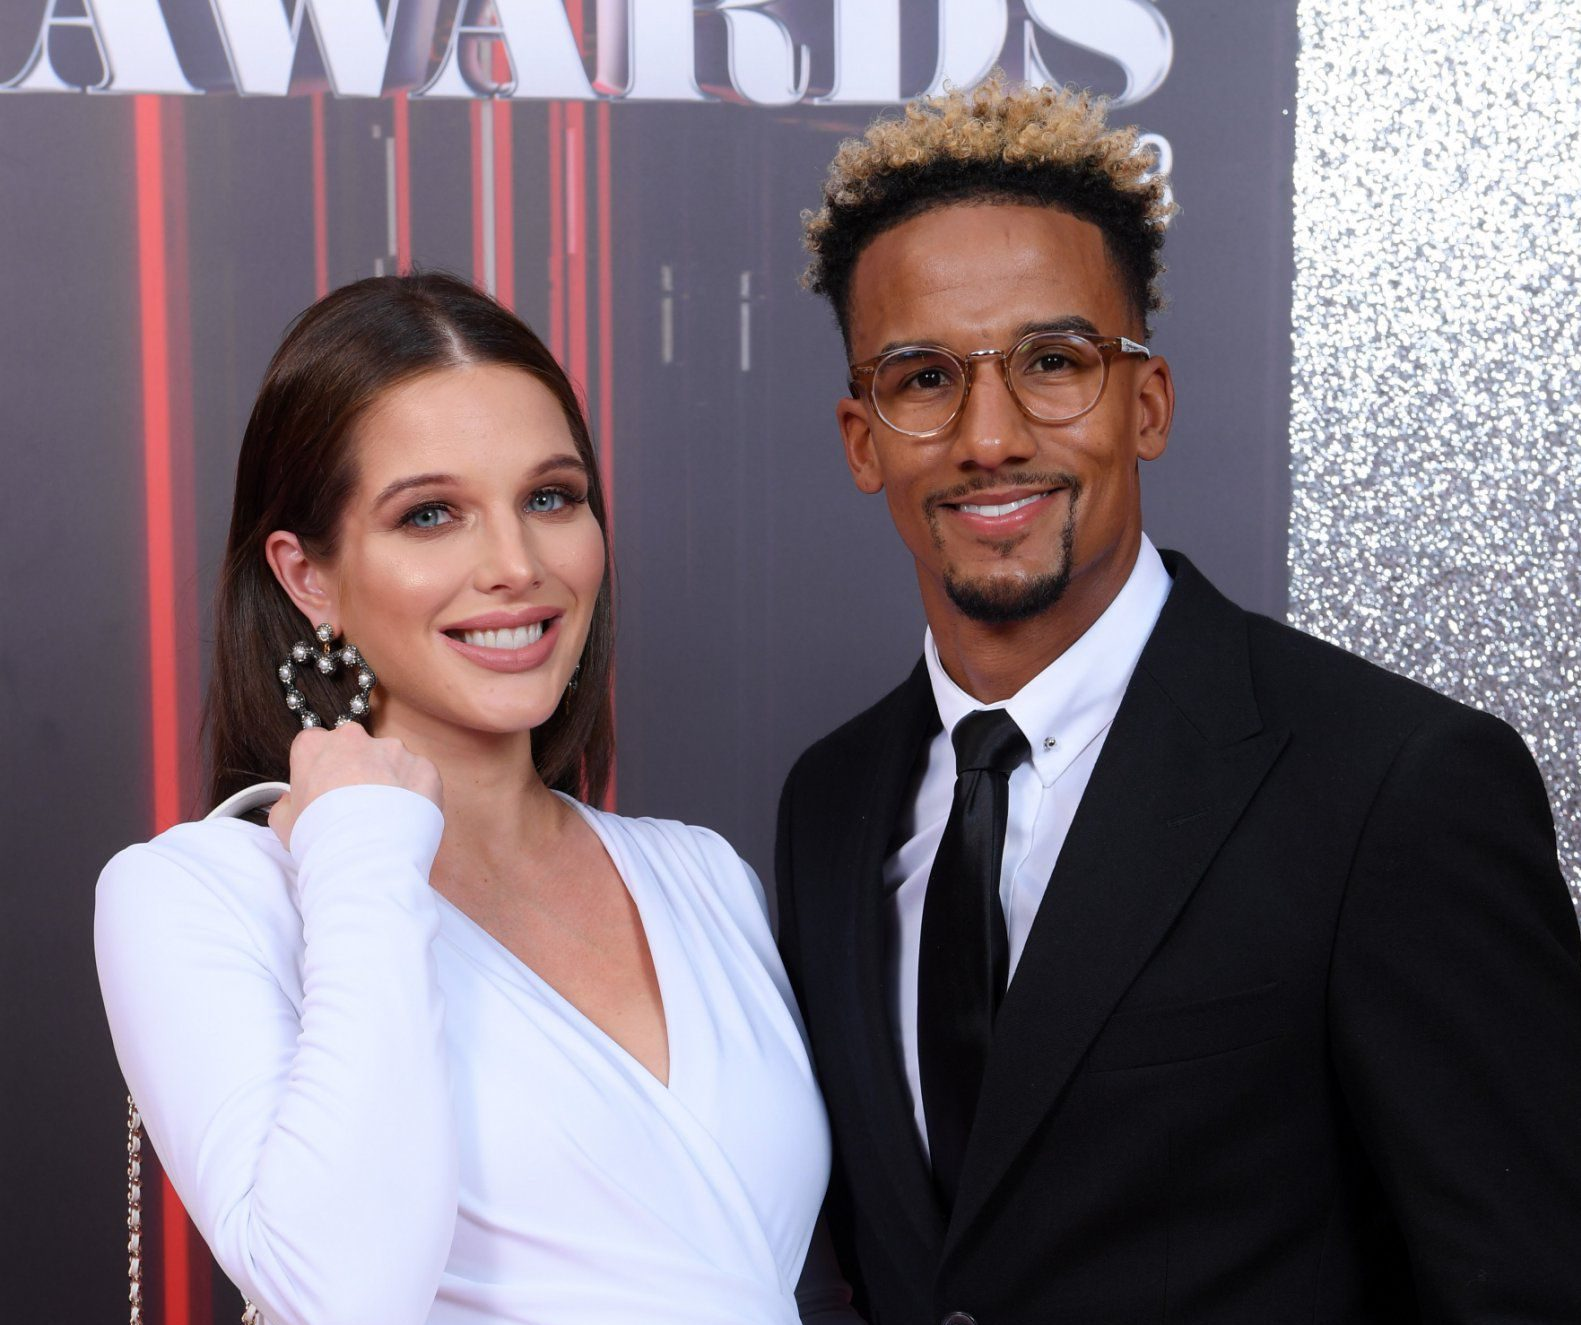 'Besotted' Helen Flanagan welcomes daughter Delilah Ruby with boyfriend Scott Sinclair